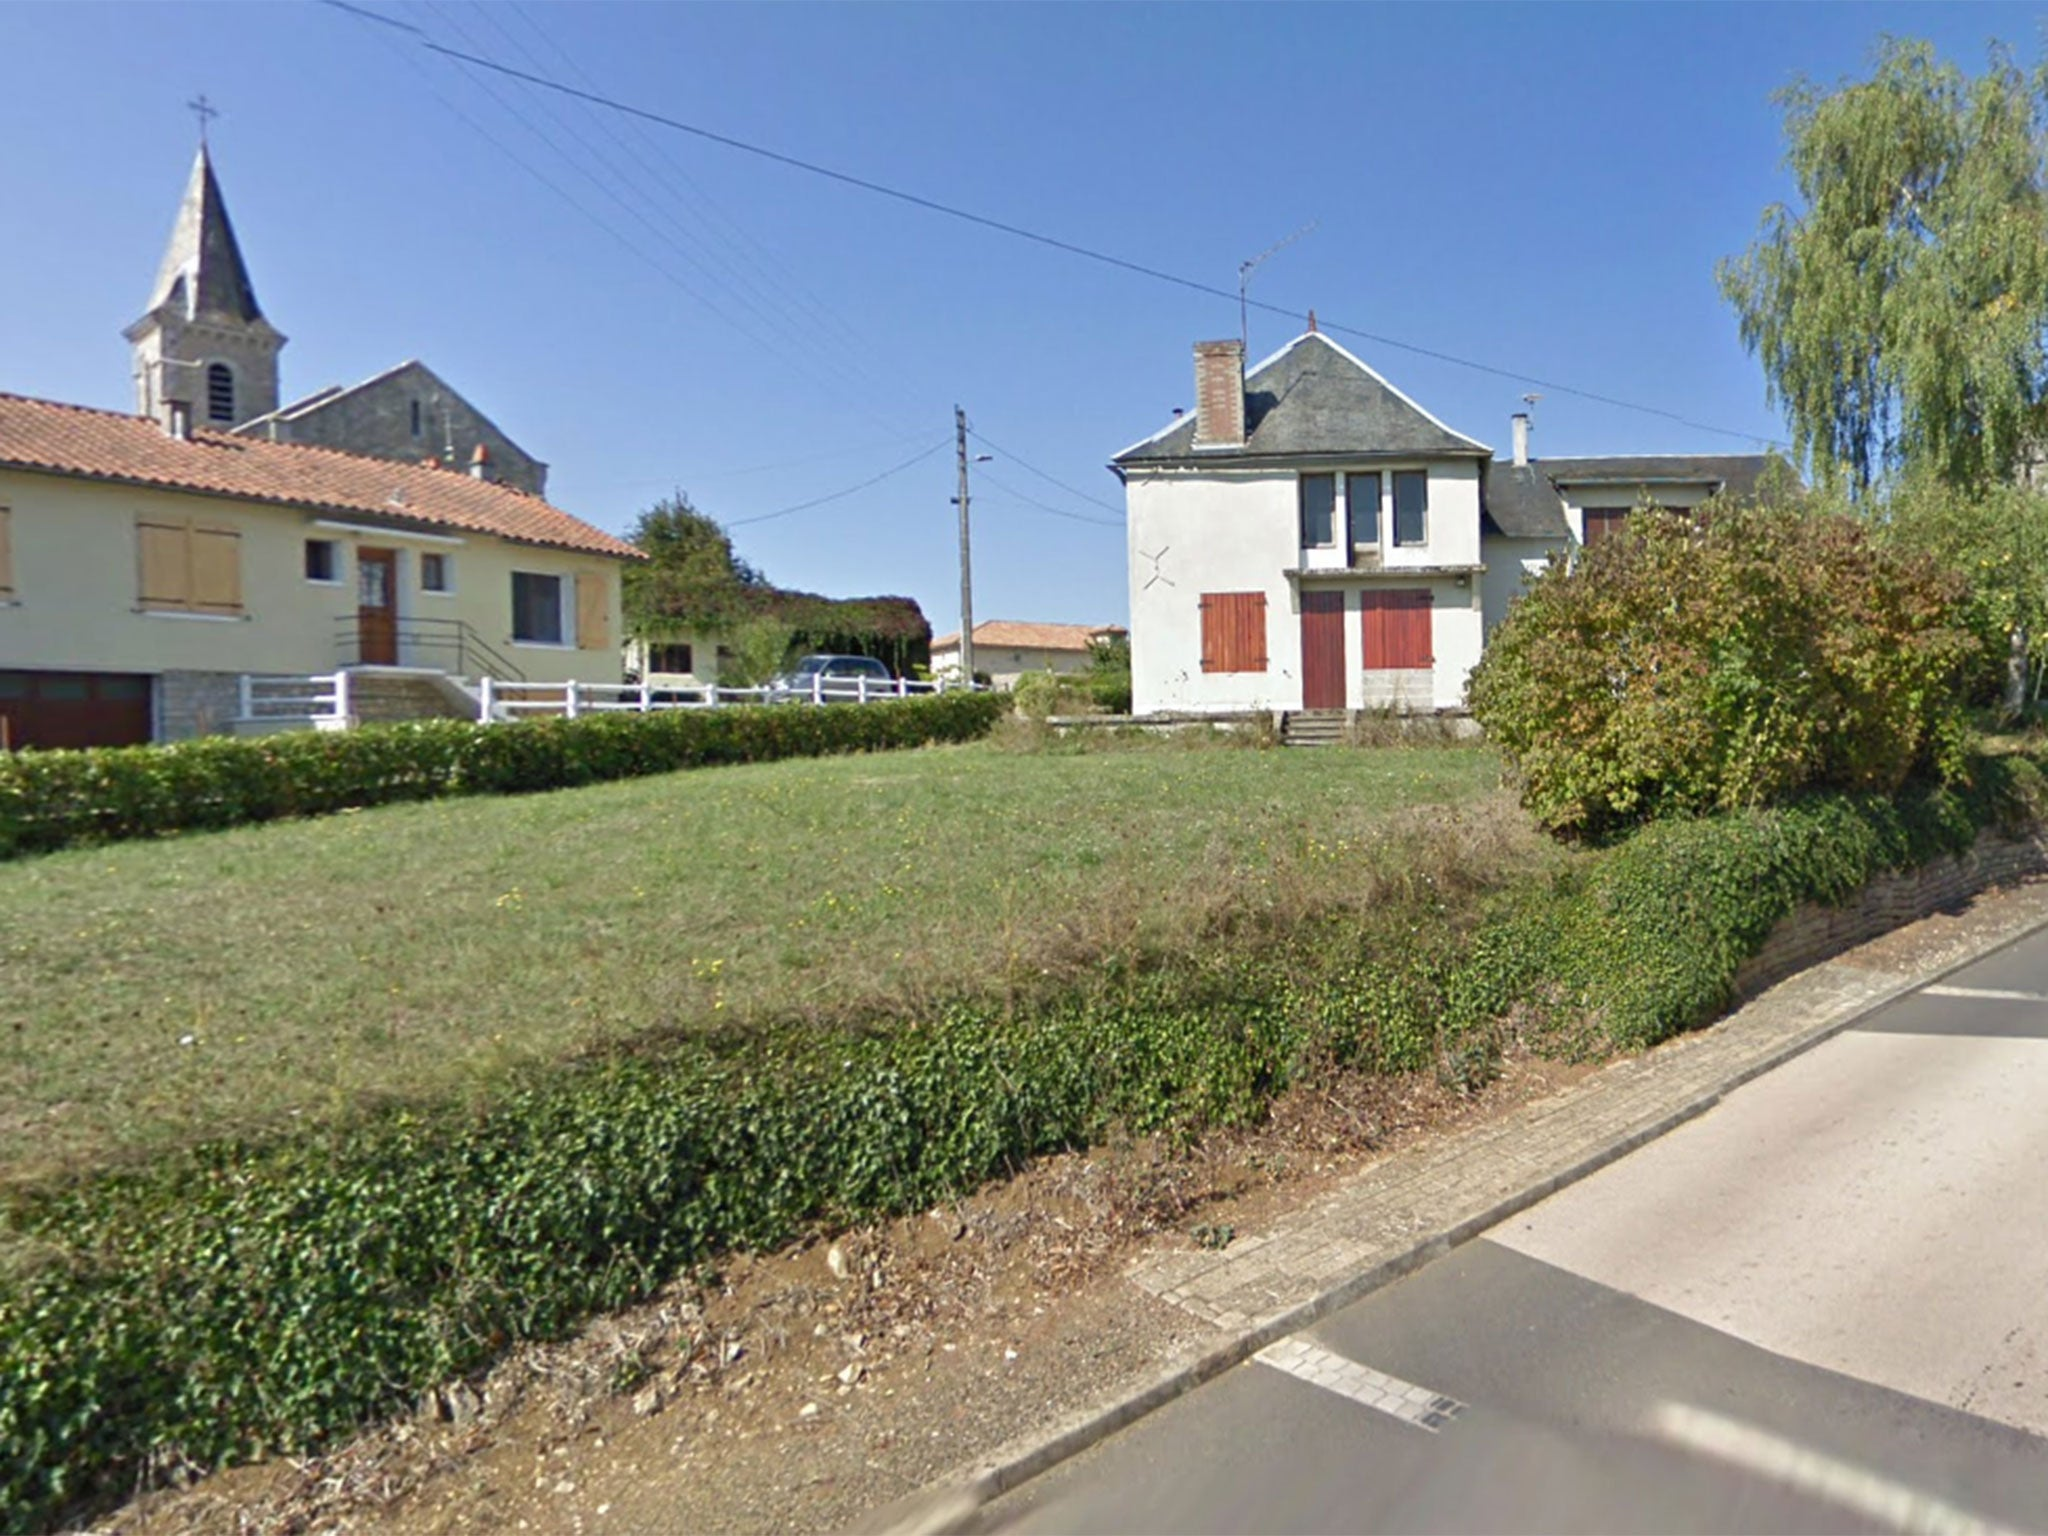 Former British soldier subjected French village to one-man crime wave, say prosecutors